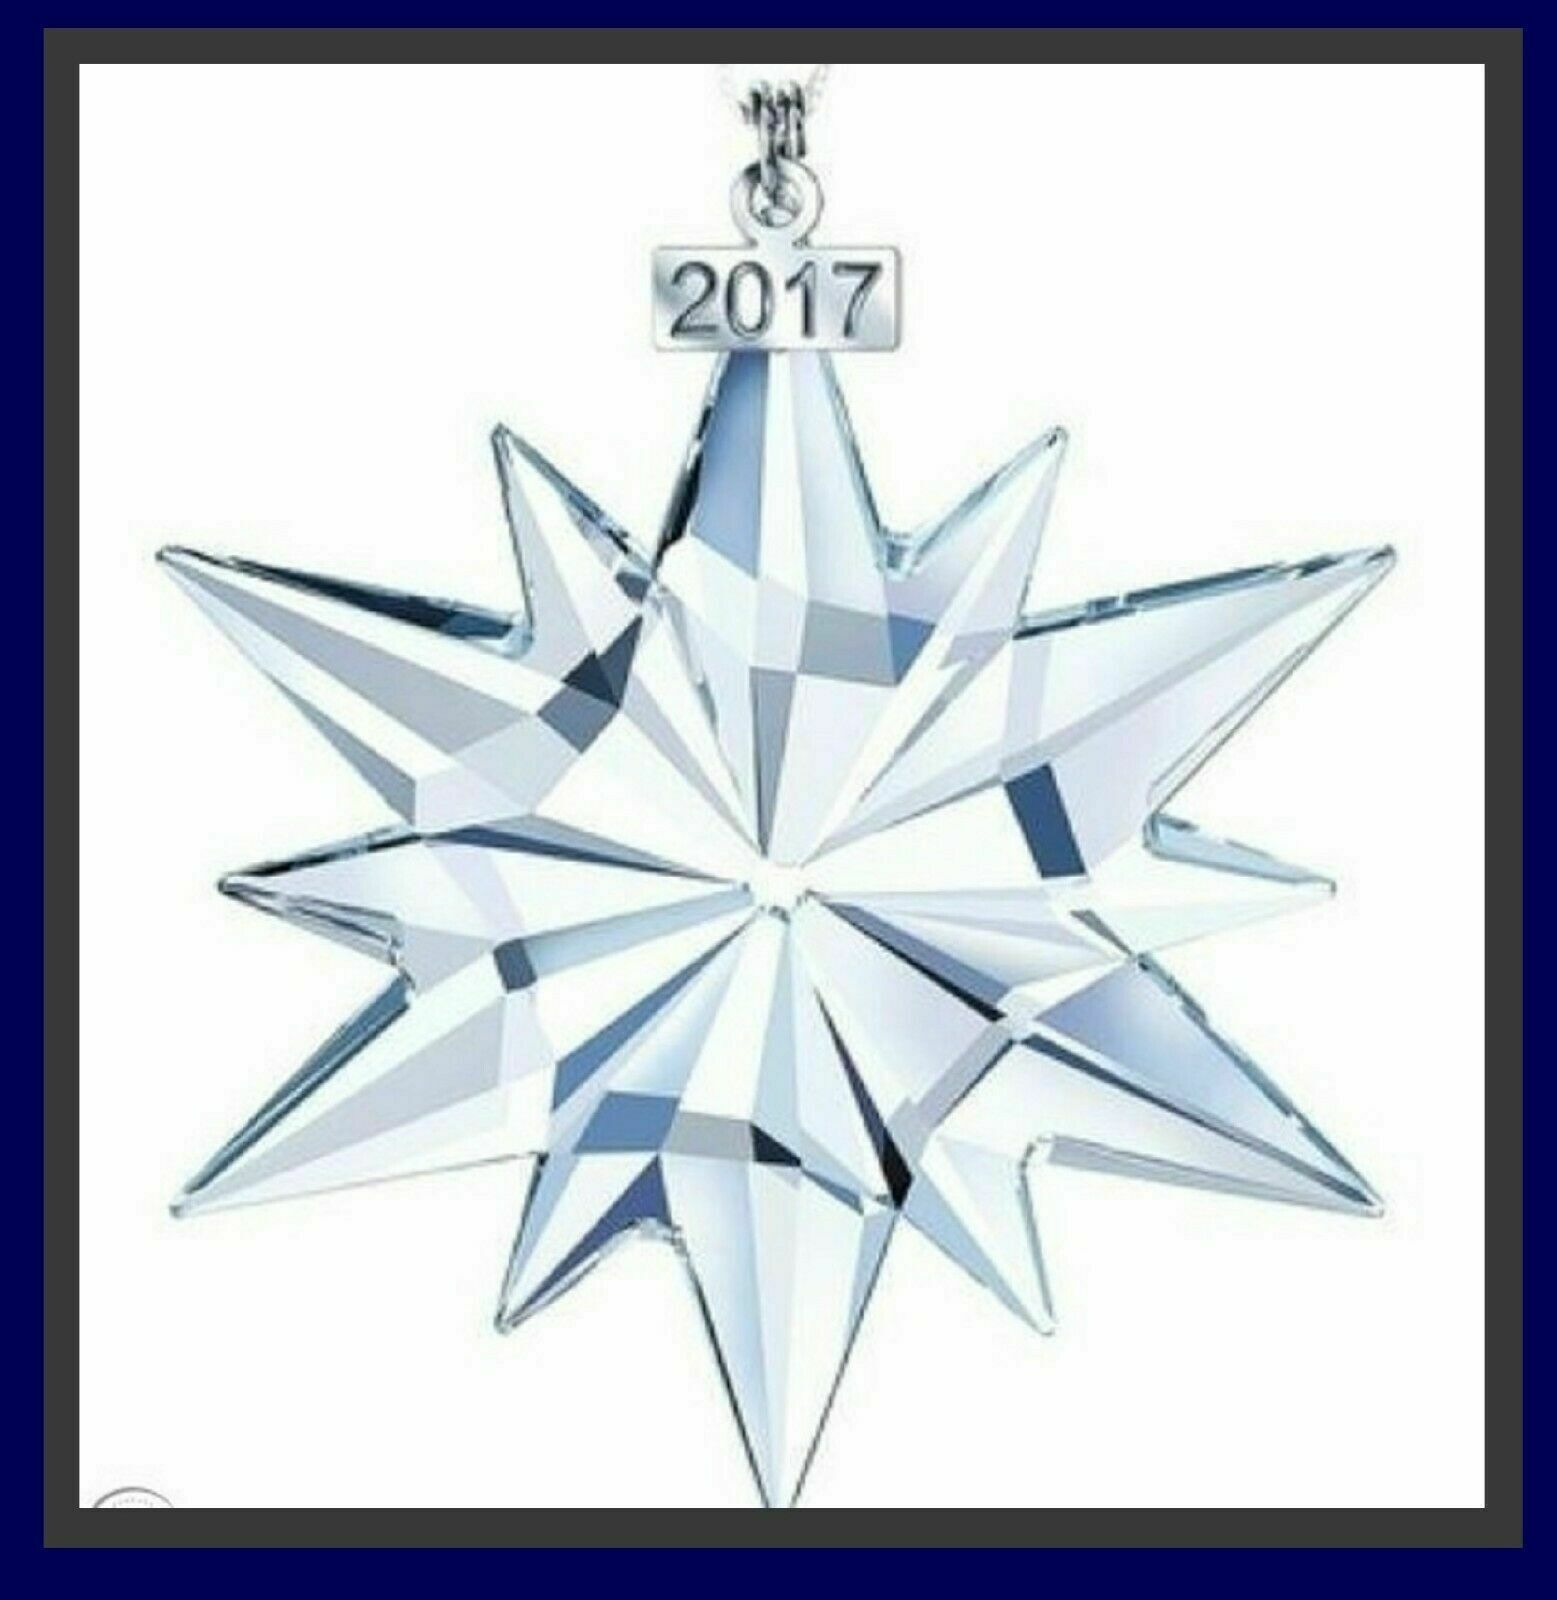 NEW Swarovski Clear Crystal Christmas Ornament 2017 Christmas Snowflake